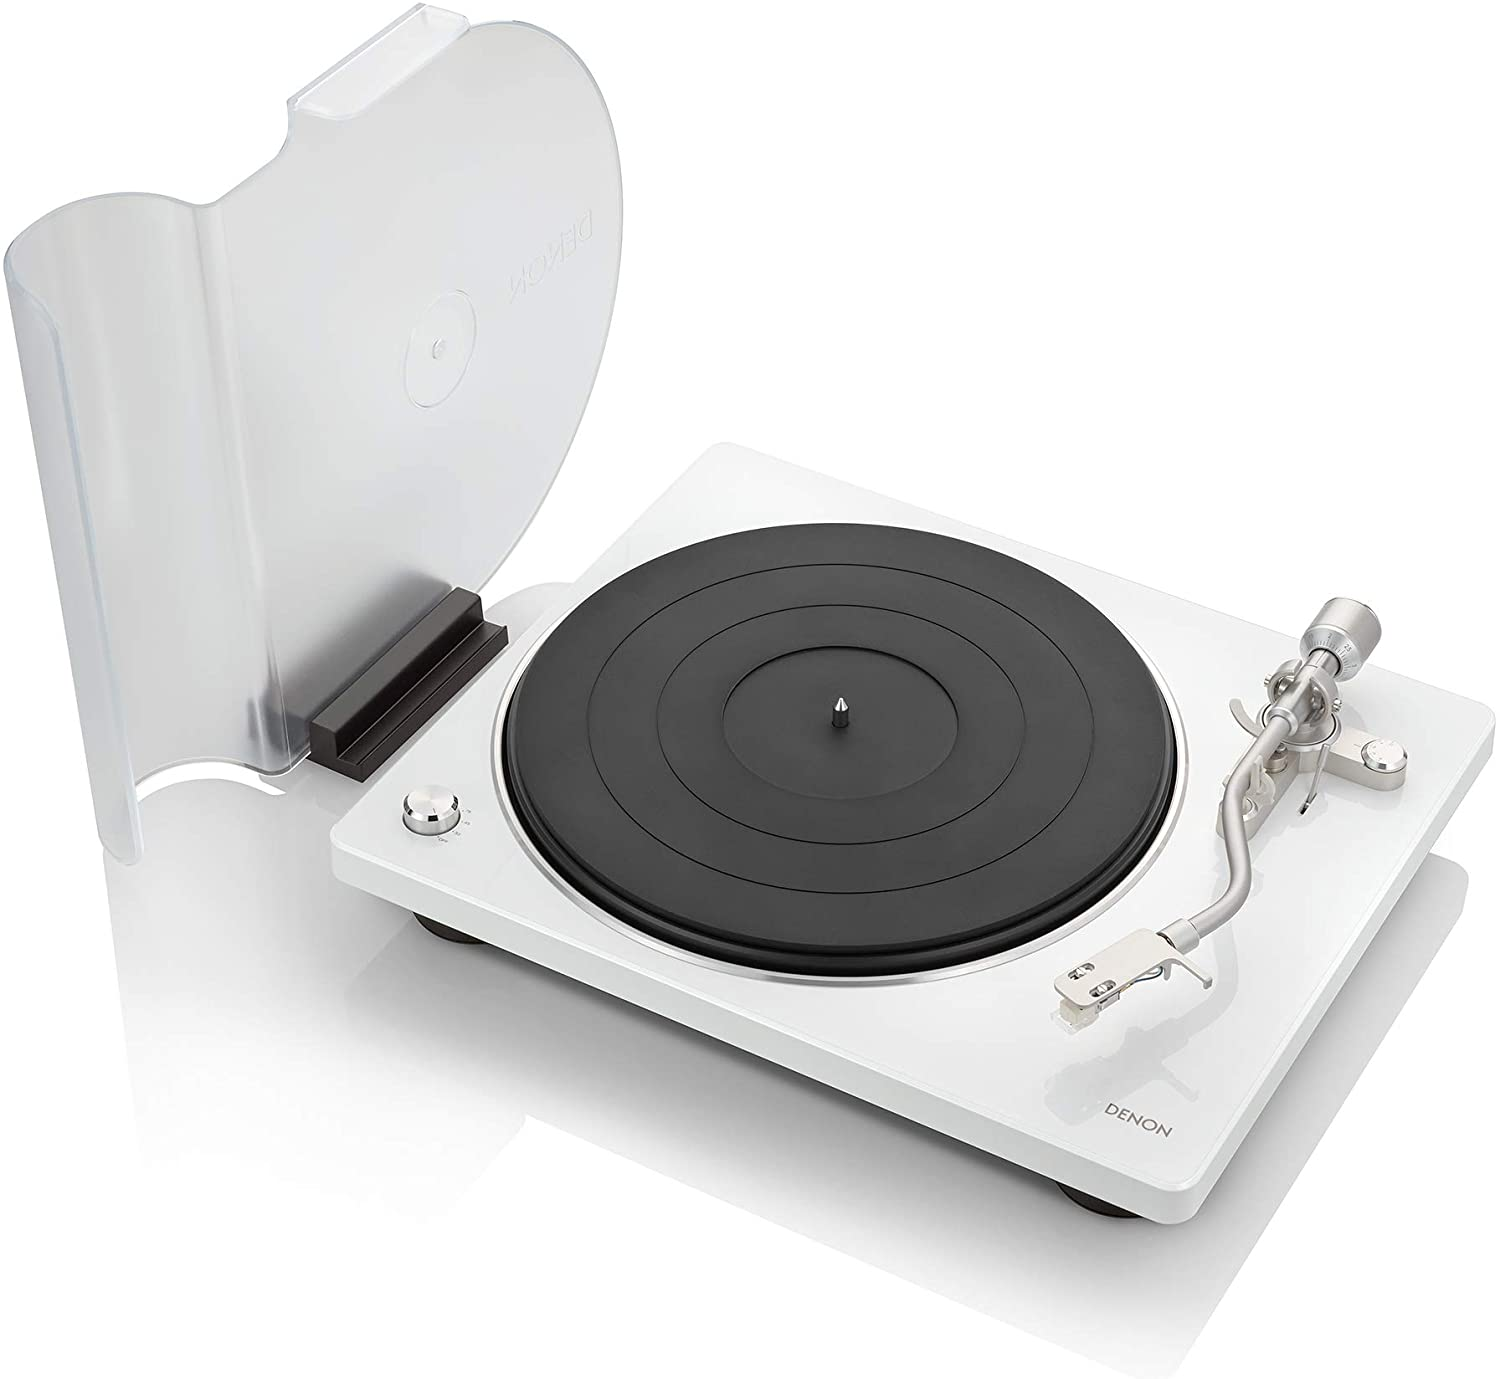 Amazon.com: Denon DP-400 (White) Semi-Automatic Analog Turntable with Speed  Auto Sensor | Specially Designed Curved Tonearm | Supports 33 1/3. 45, 78  RPM (Vintage) Speeds | Modern Looks, Superior Audio: Electronics